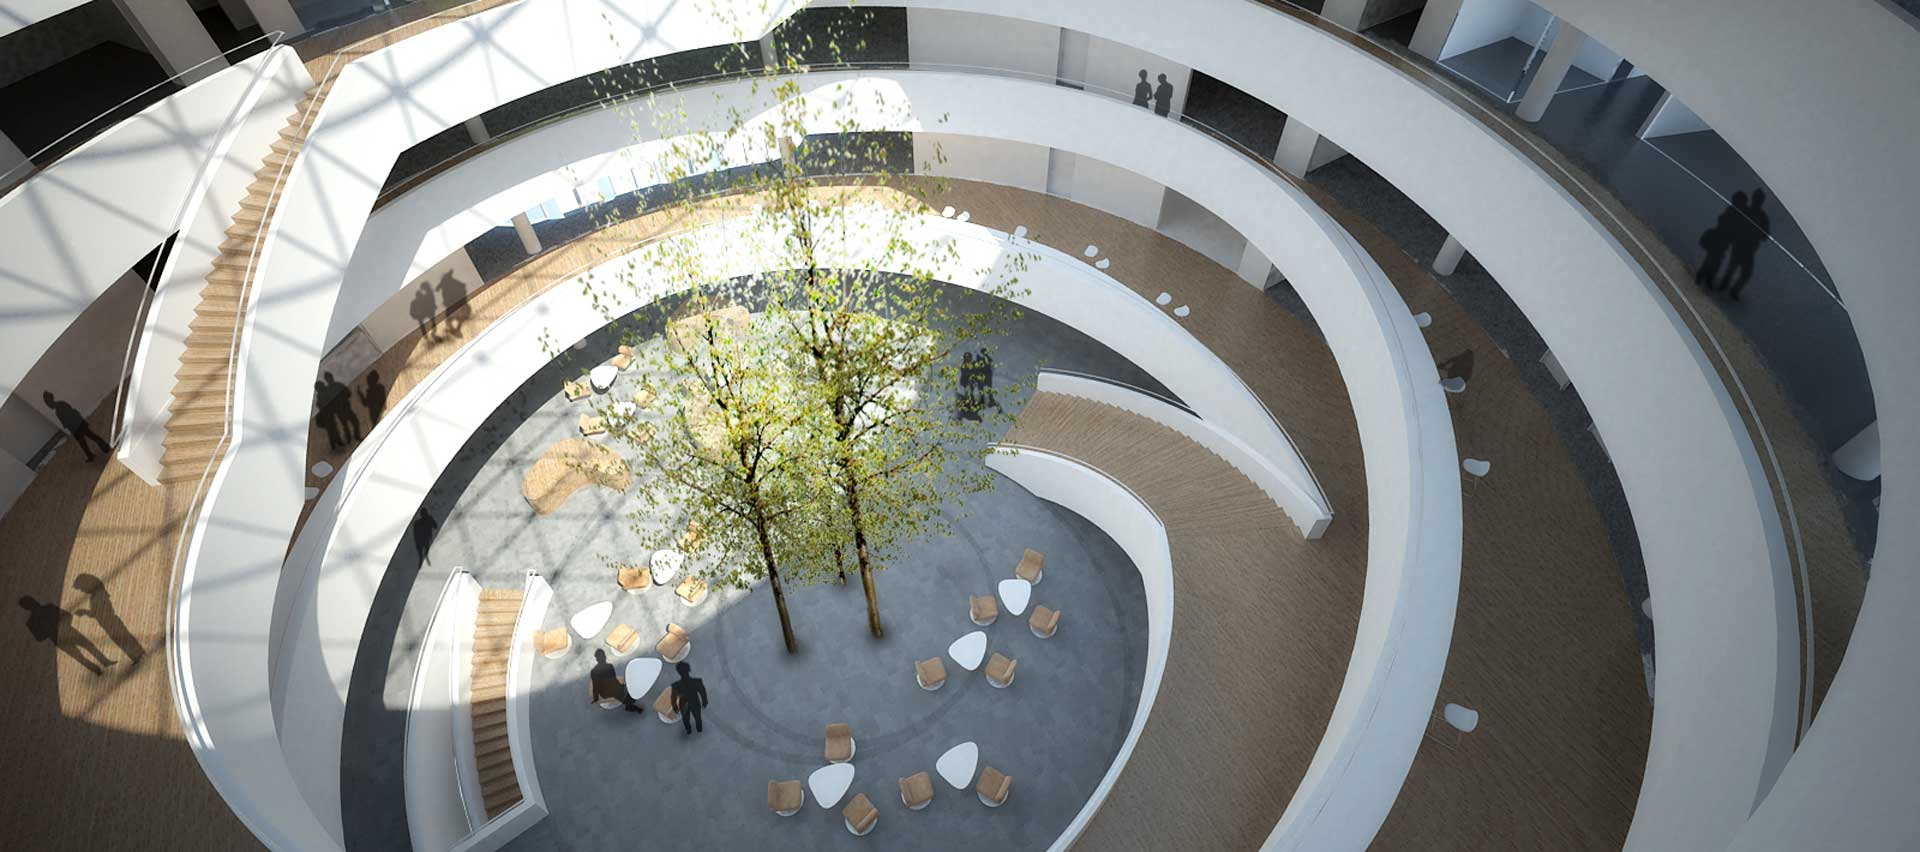 New Corporate Centre For Novo Nordisk By Henning Larsen